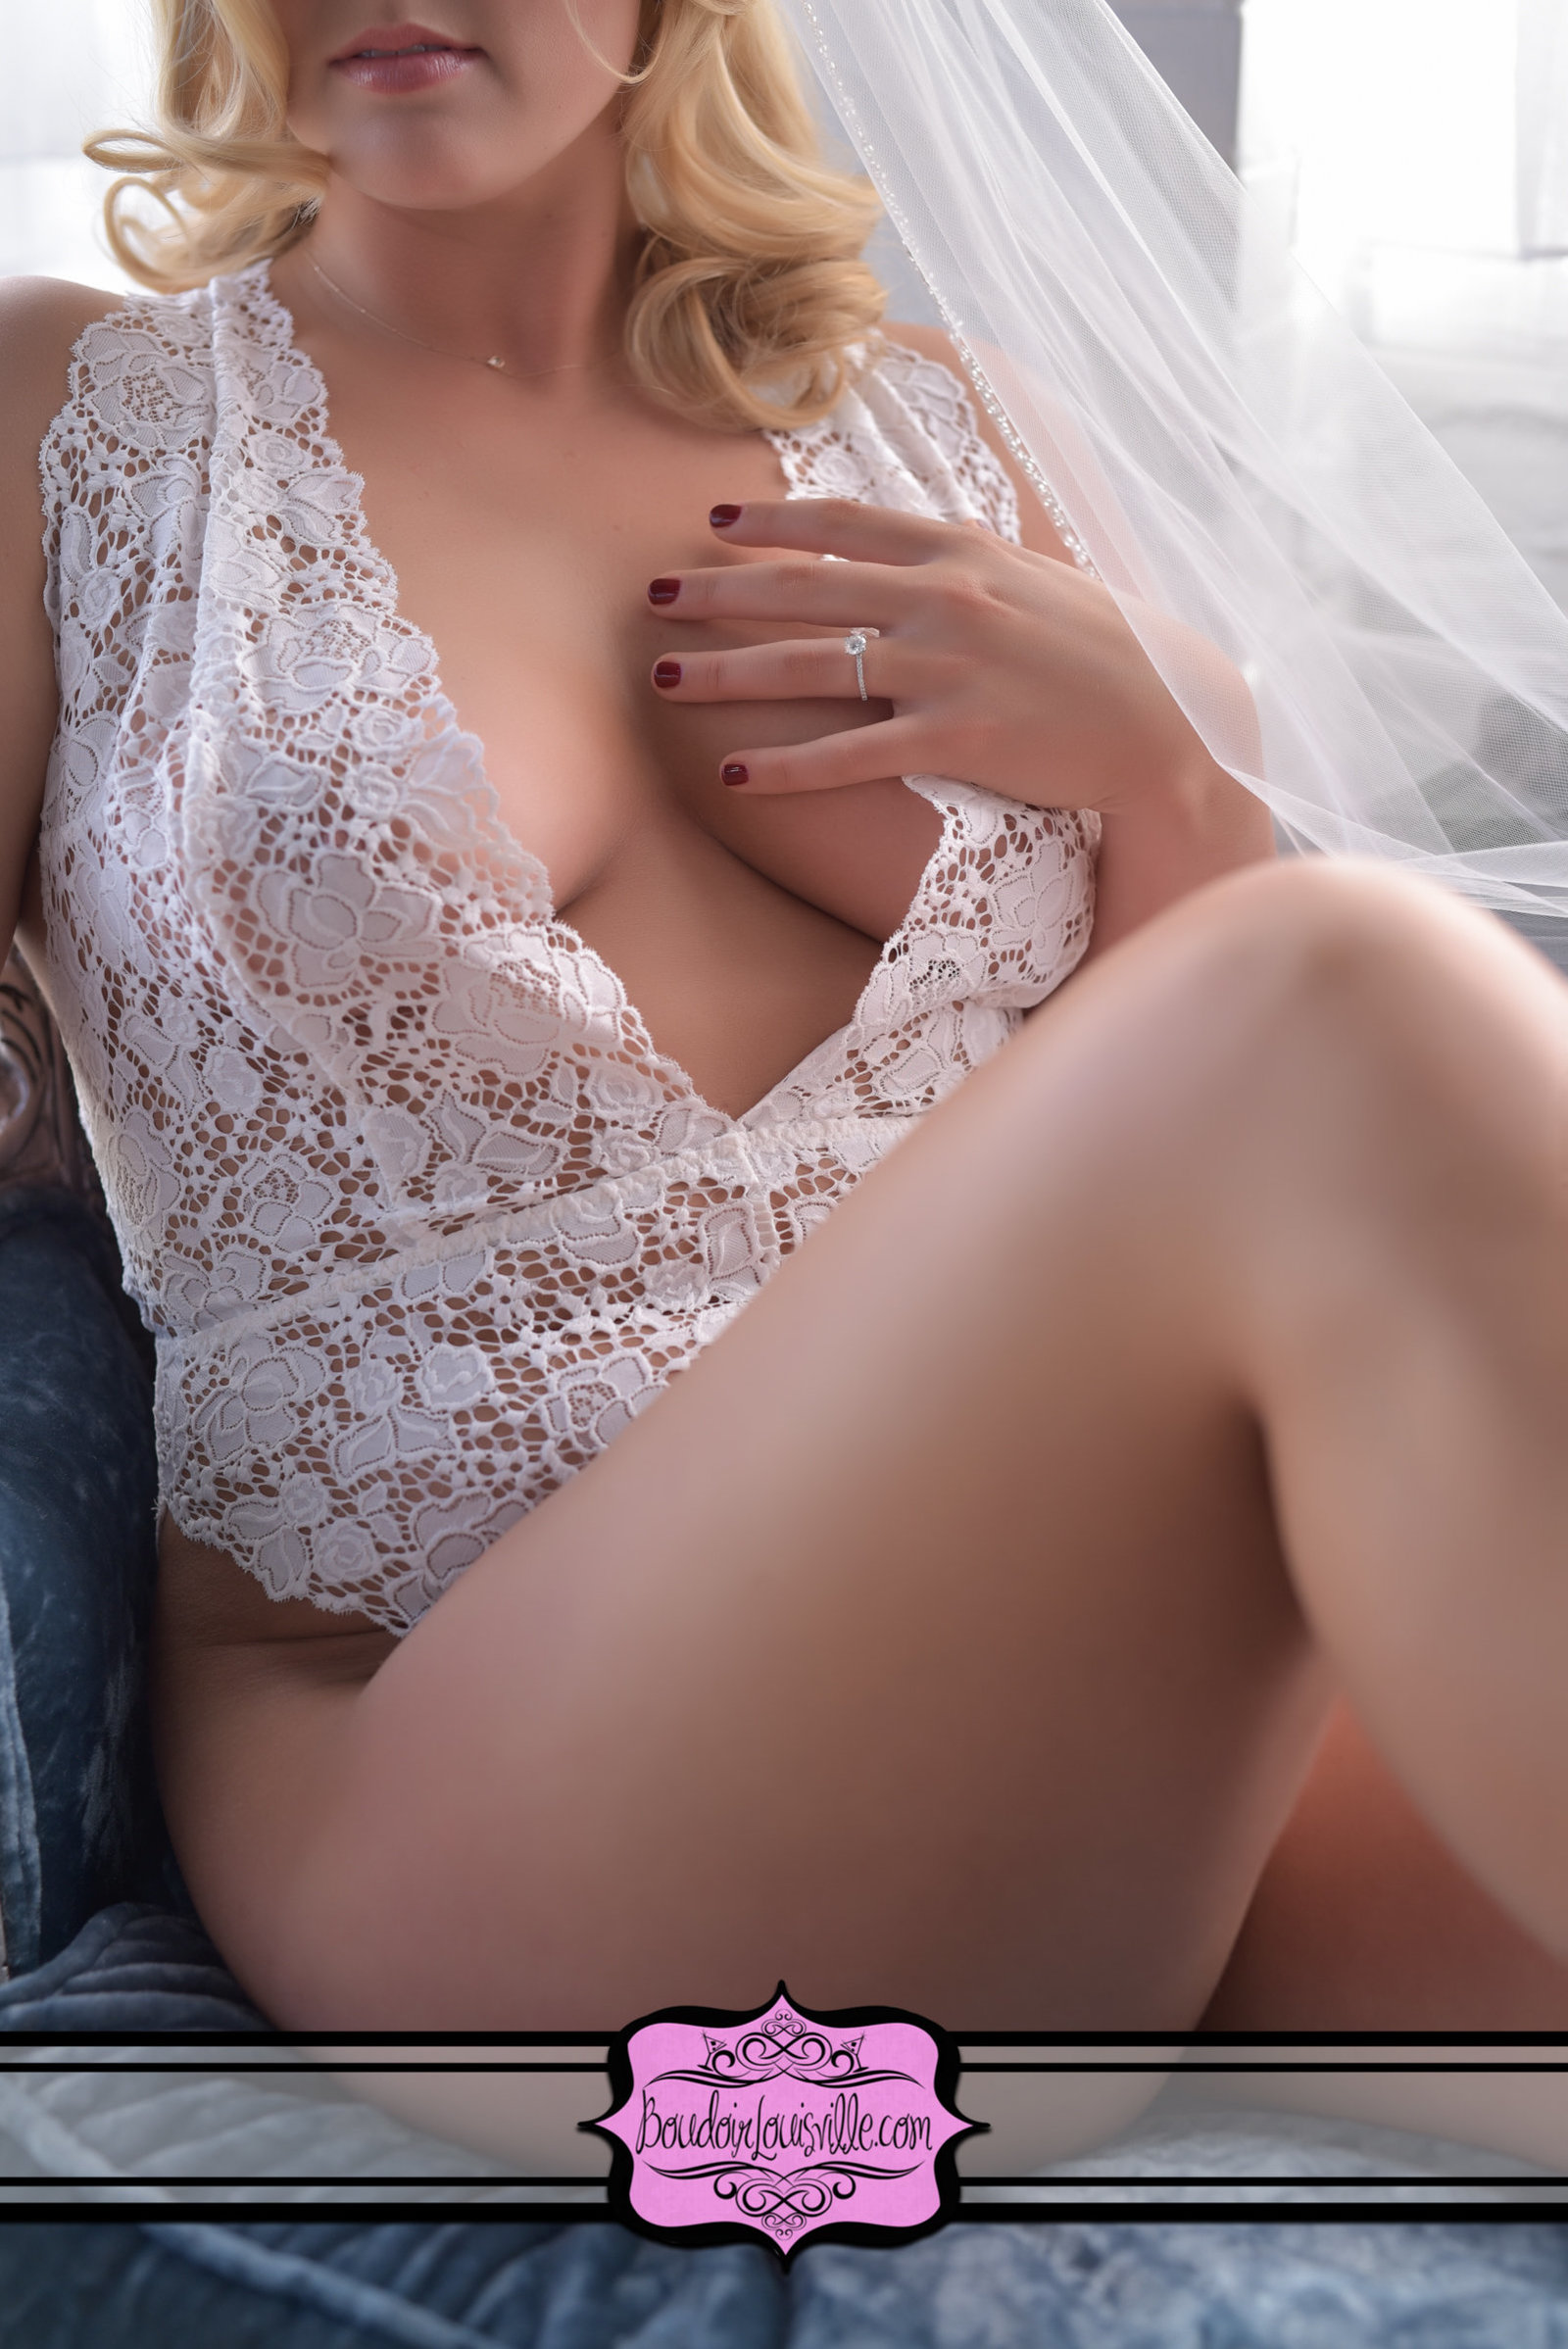 Boudoir Louisville - Bridal Boudoir Photo Studio-8